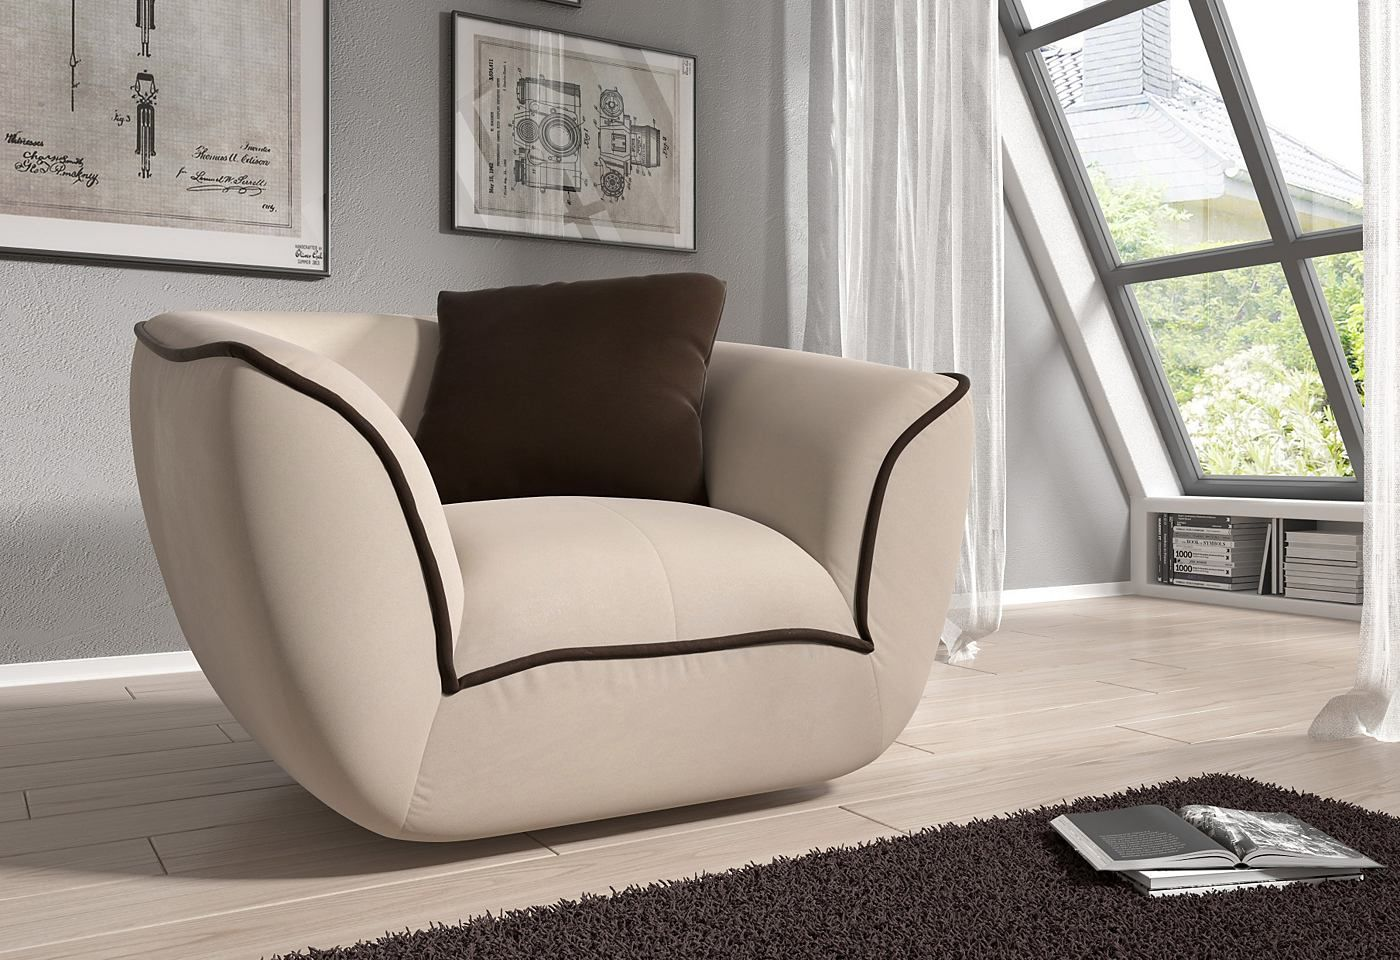 Home Affaire Sessel Milano Home Affaire Sessel Elegant Home Sessel By Sessel Home Affaire G